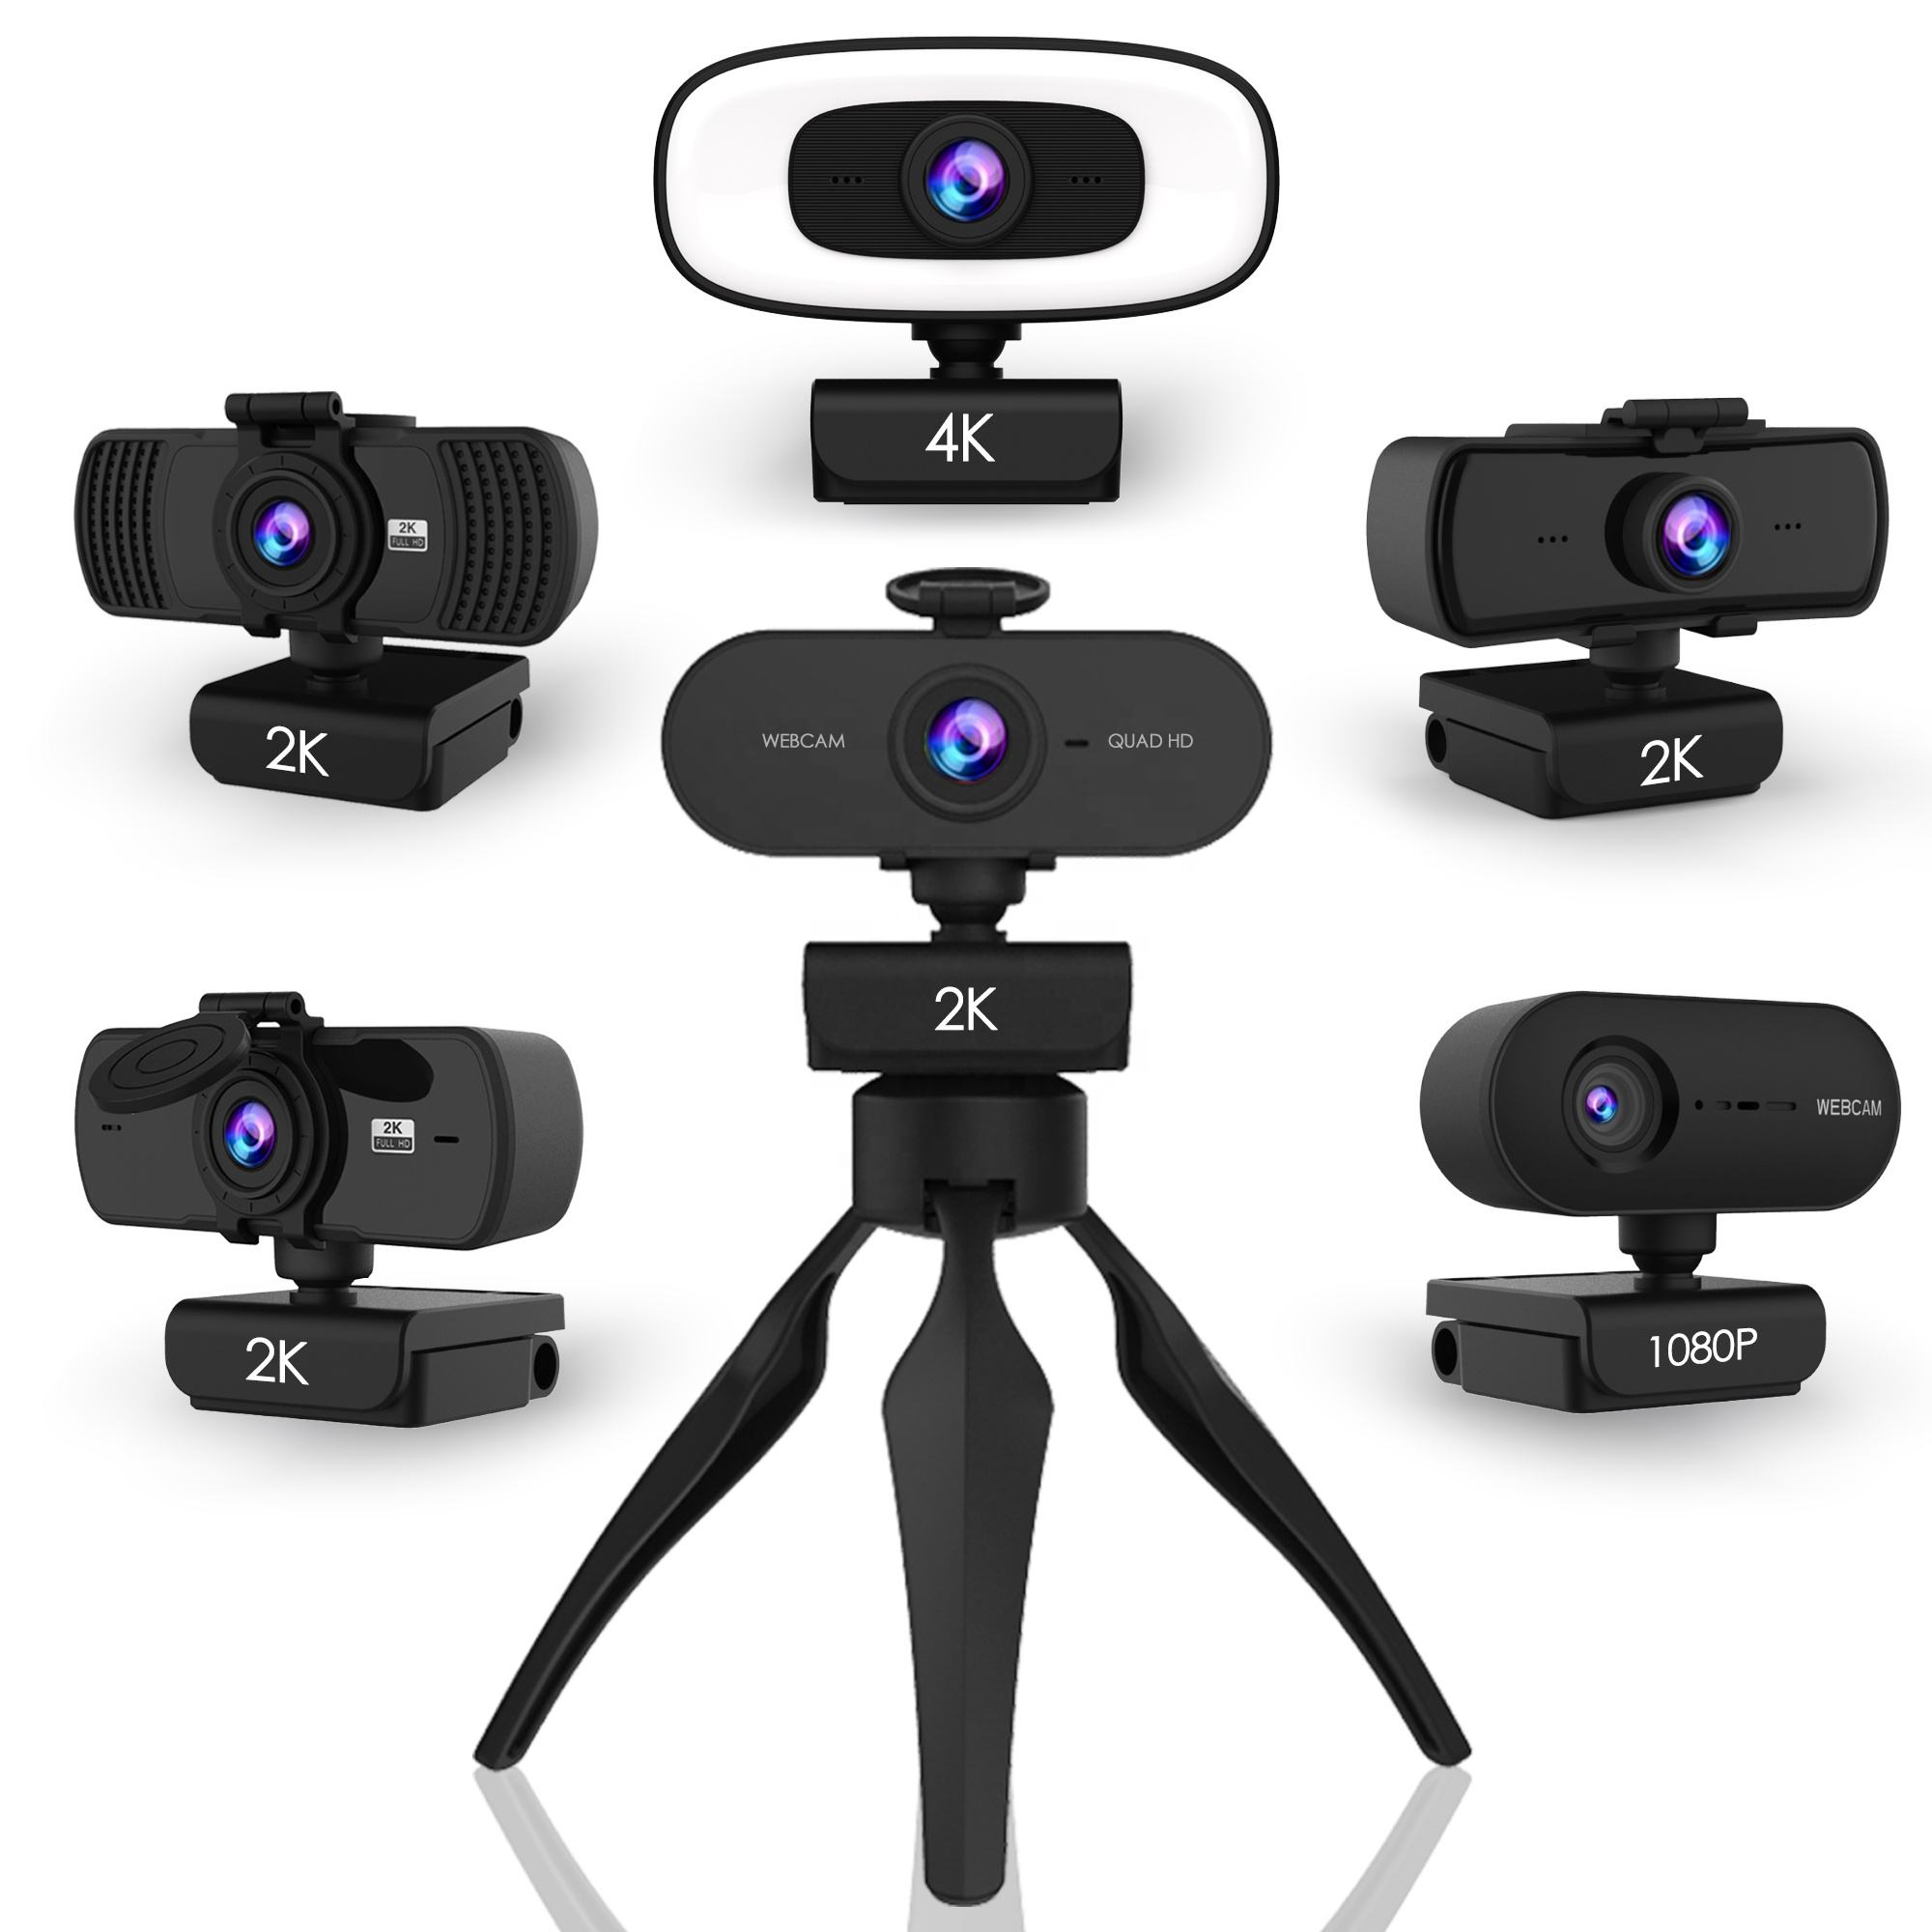 Webcam USB HD 1080P Kamera <span class=keywords><strong>Web</strong></span> Cam dengan Mikrofon Webcam 2K untuk Skype Komputer Tripod Laptop PC Streaming Konferensi Autofocus